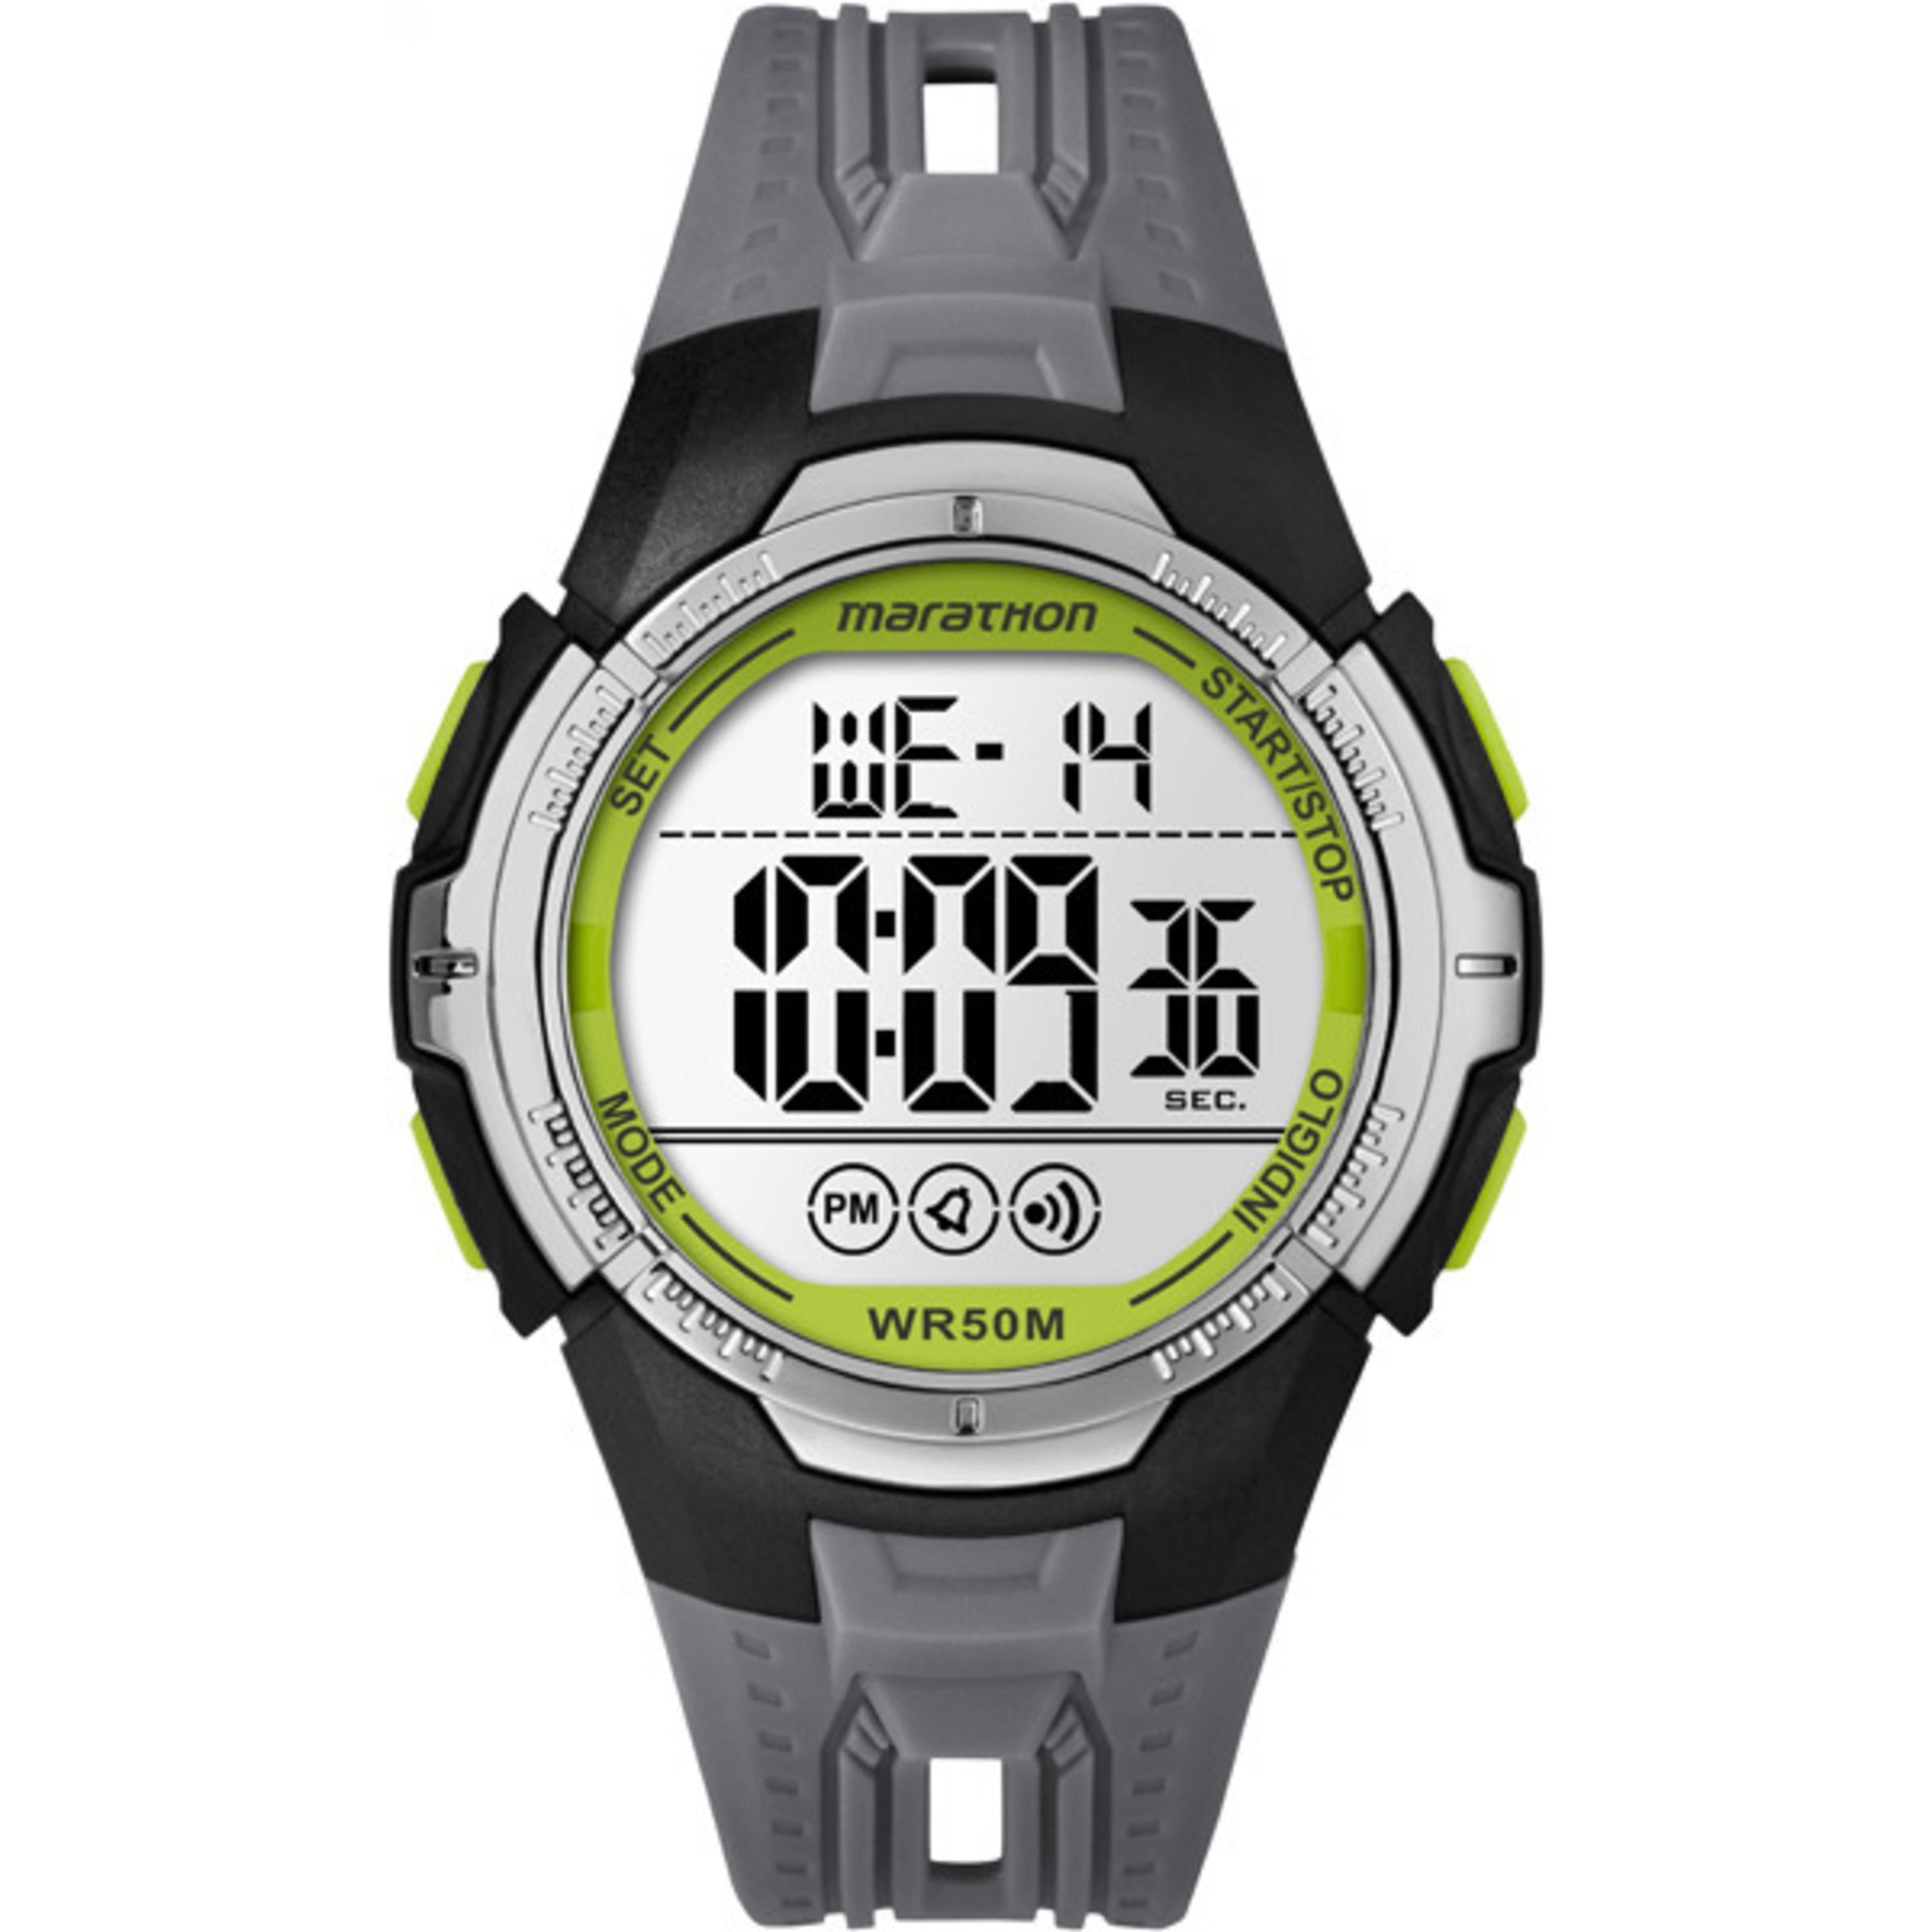 Timex Marathon TW5M06700M6 Black/Grey/Green Resin/Acrylic...